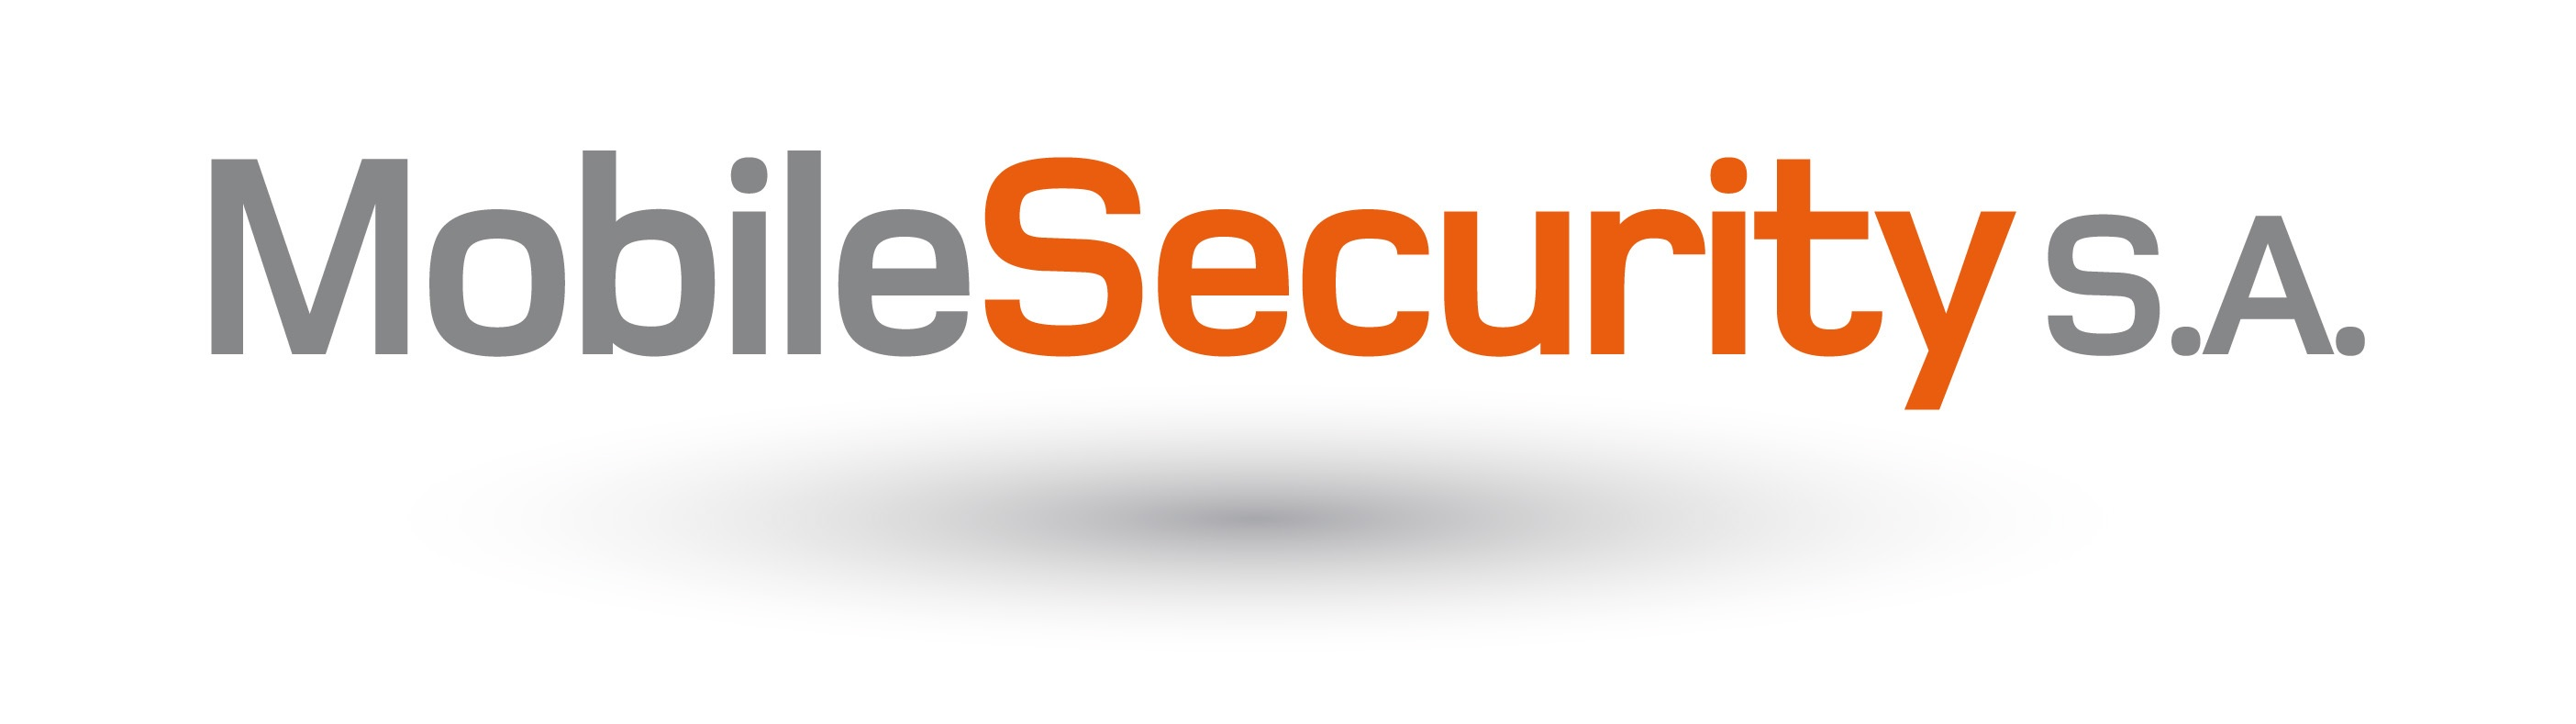 Mobile Security, S.A